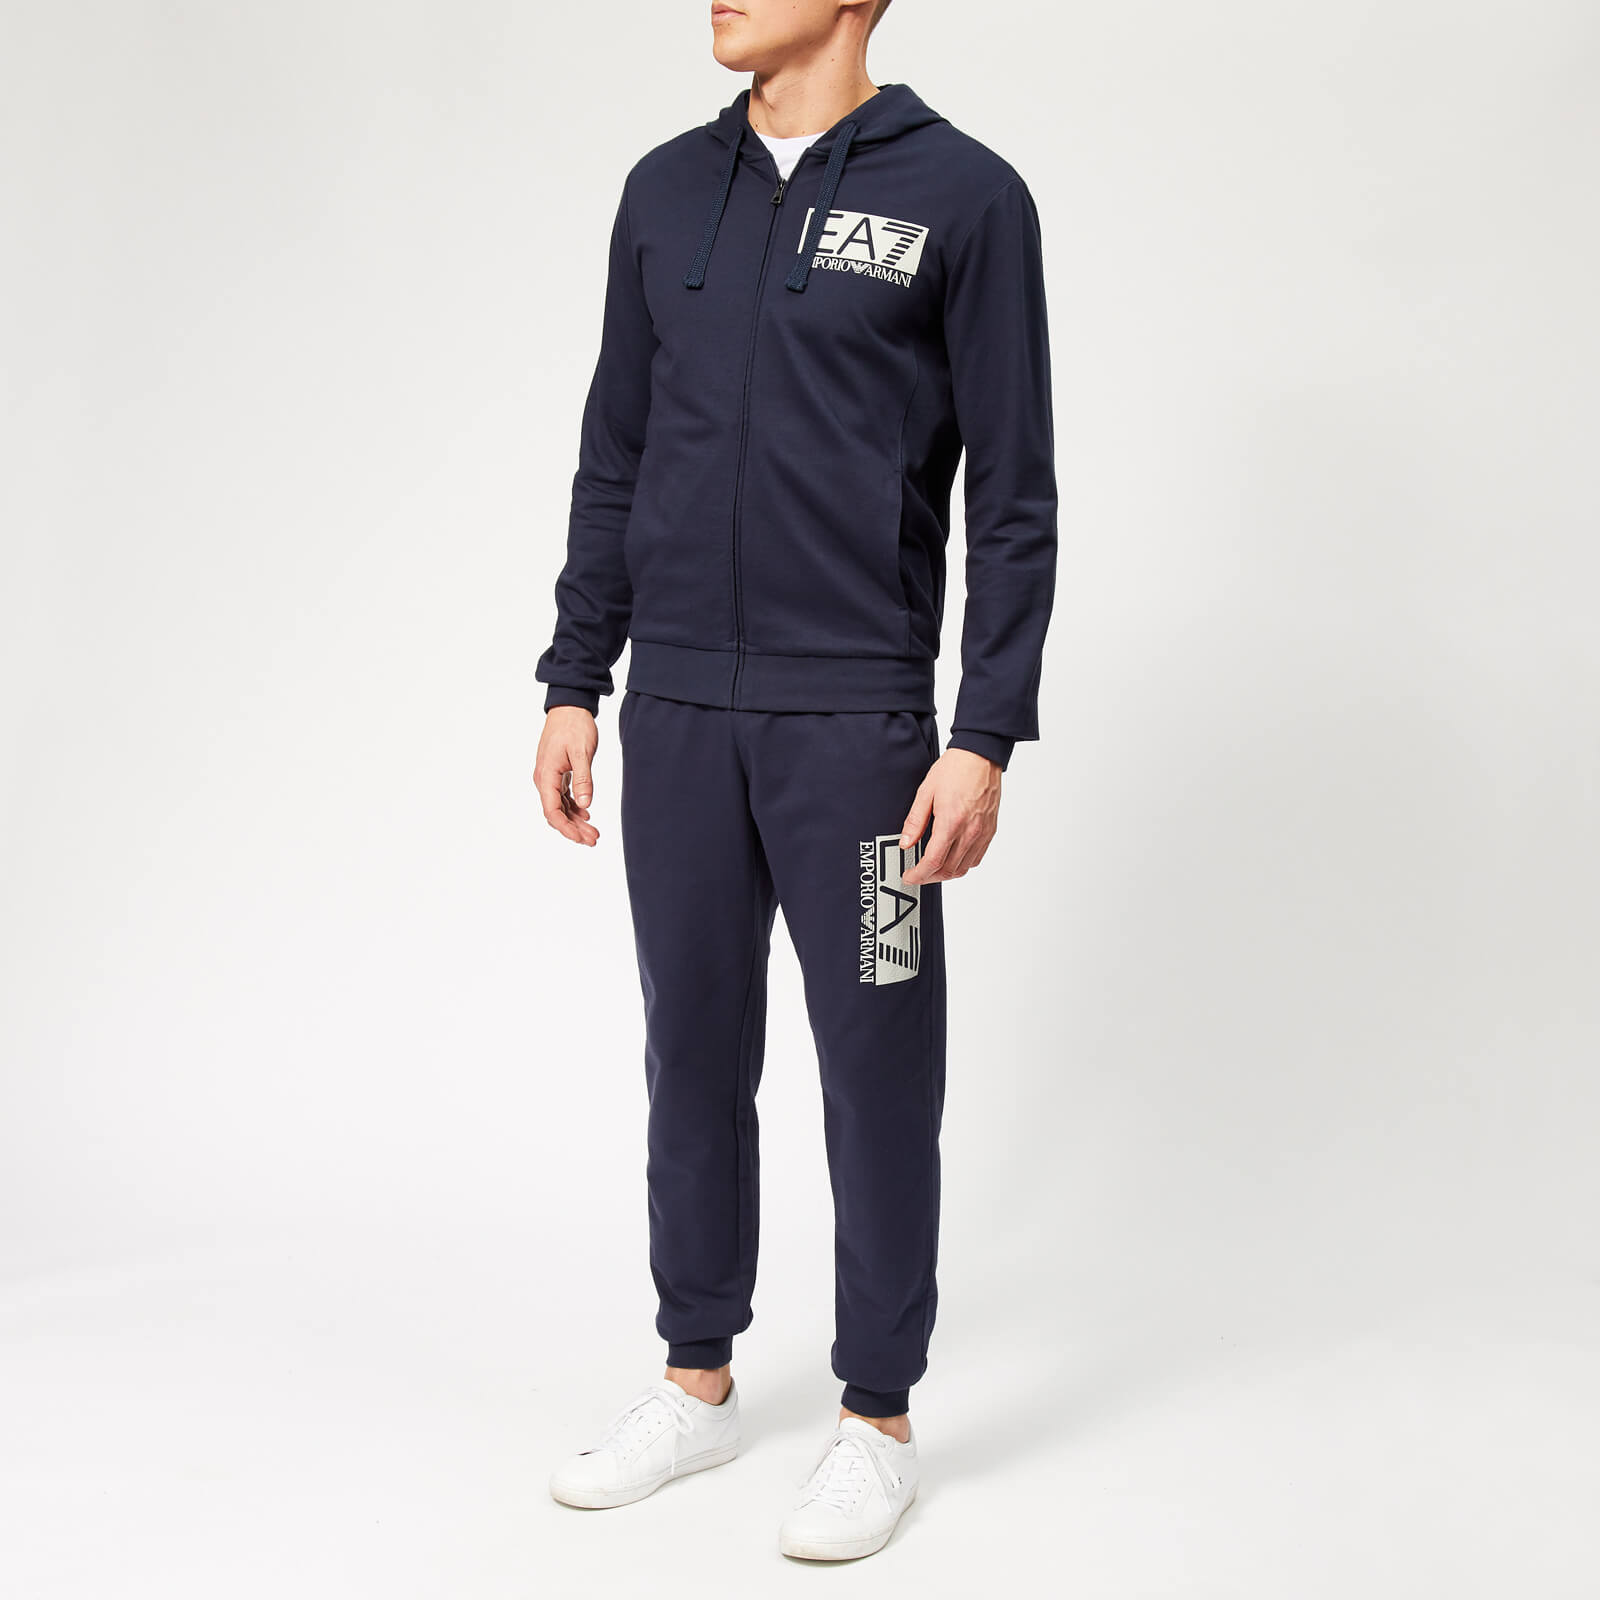 03d80293d0 Emporio Armani EA7 Men's Train Visibility Tracksuit - Navy Blue